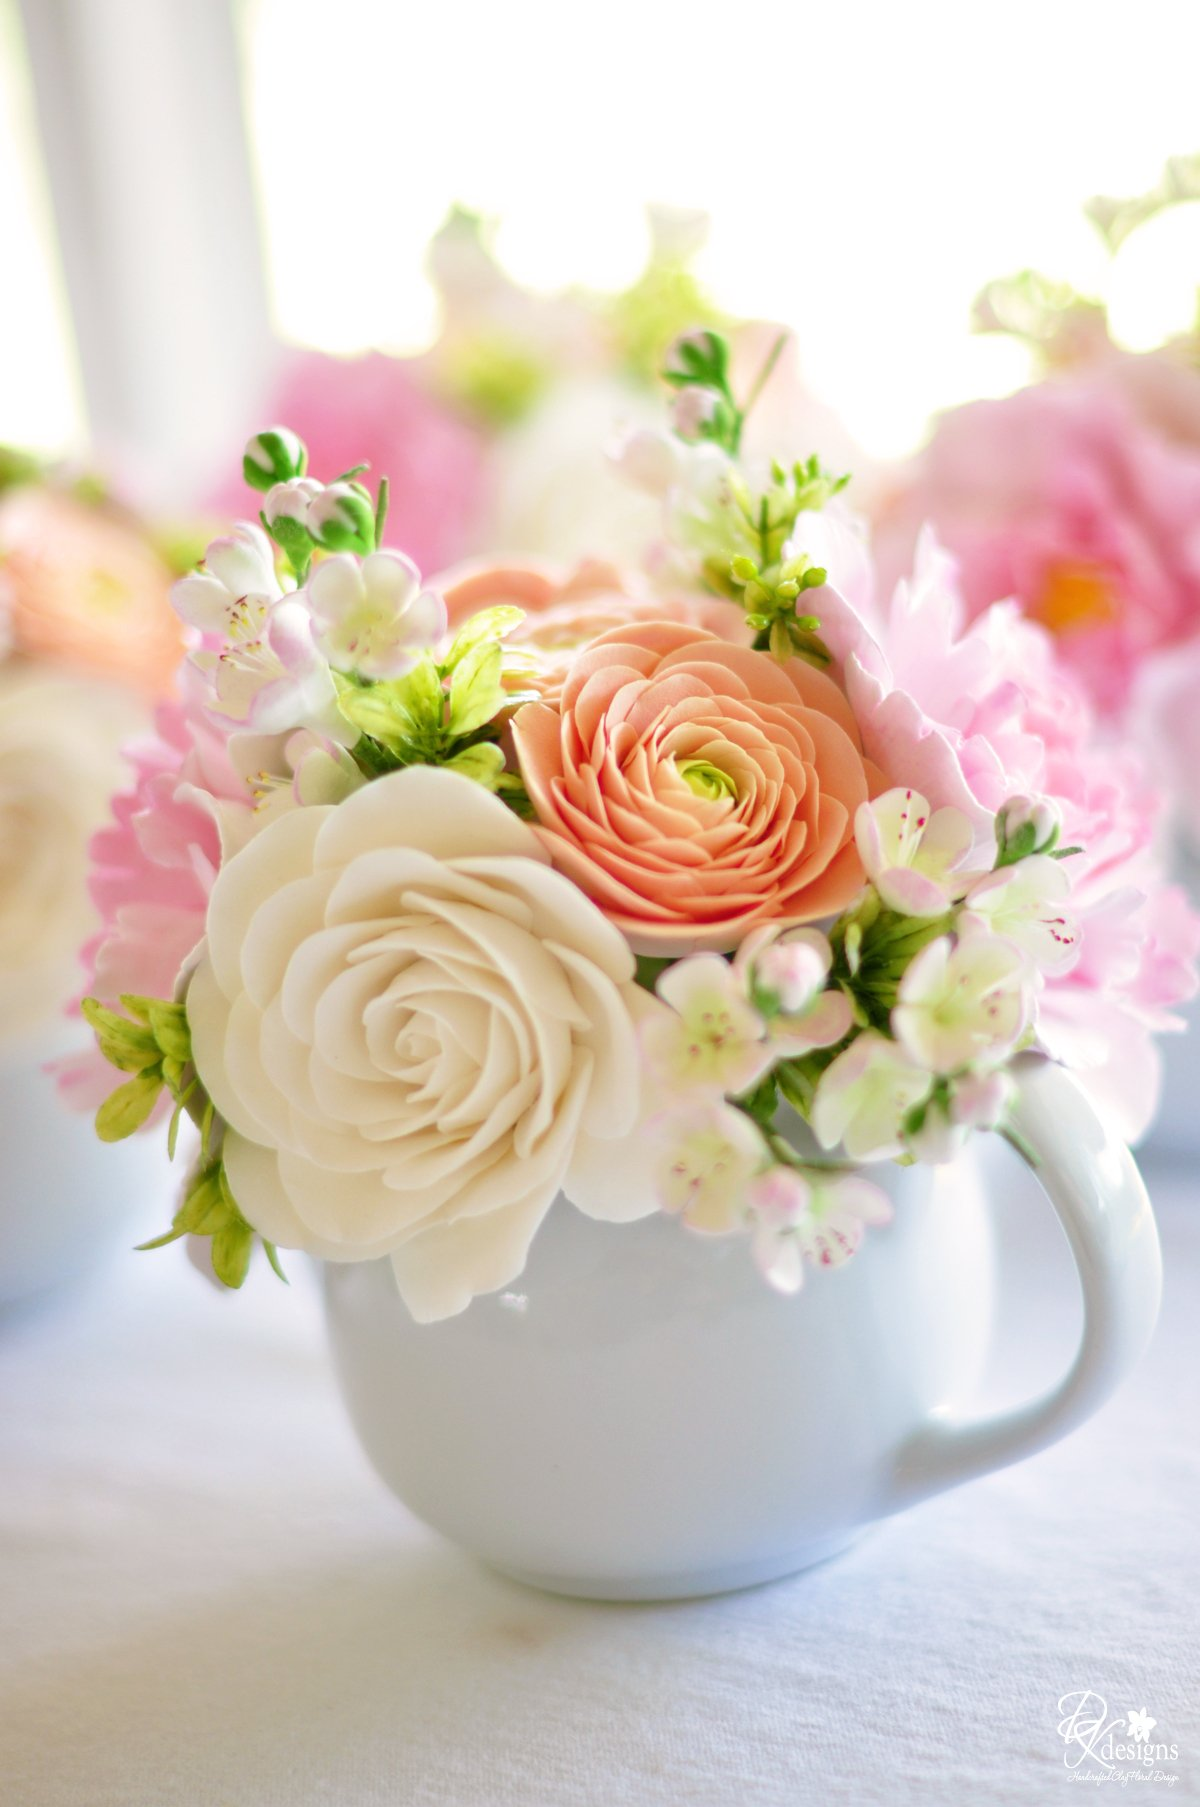 Creative ideas for Mother's Day vase designs